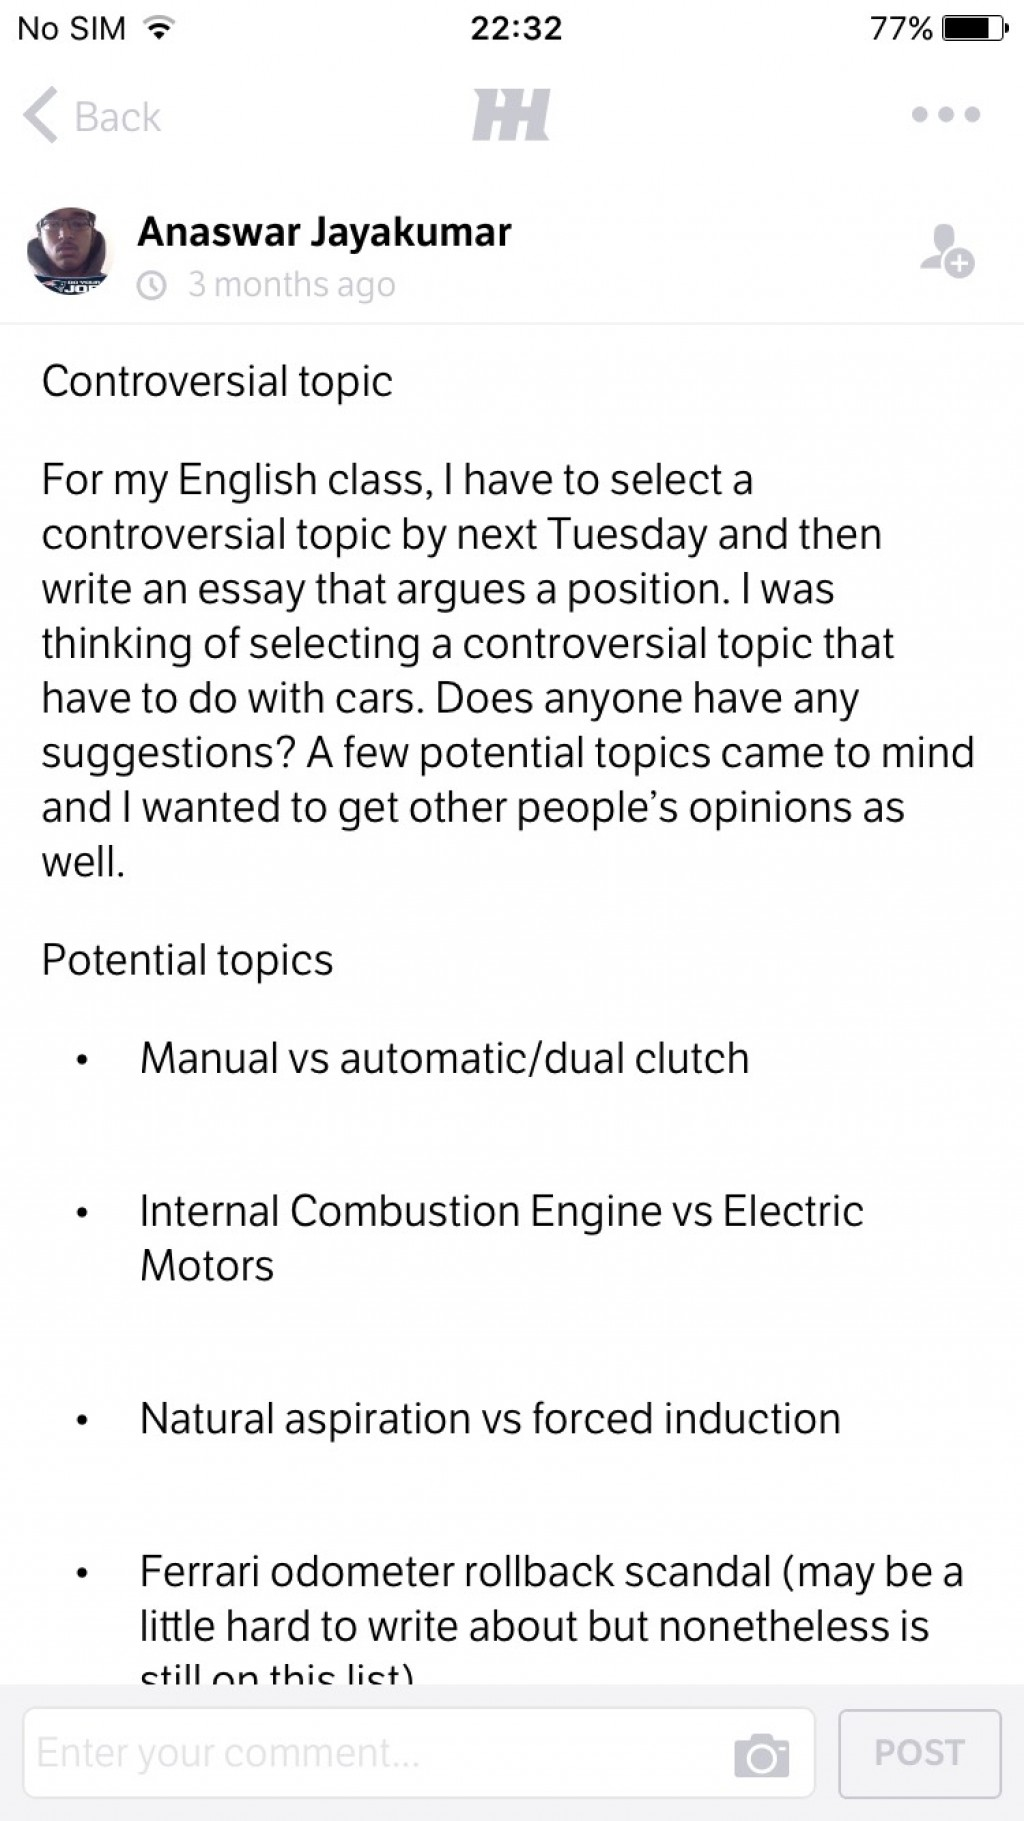 020 Research Paper Controversial Topic Essay Topics Example Outline Issue20 To Writebout In Shocking Write About A Health On Large